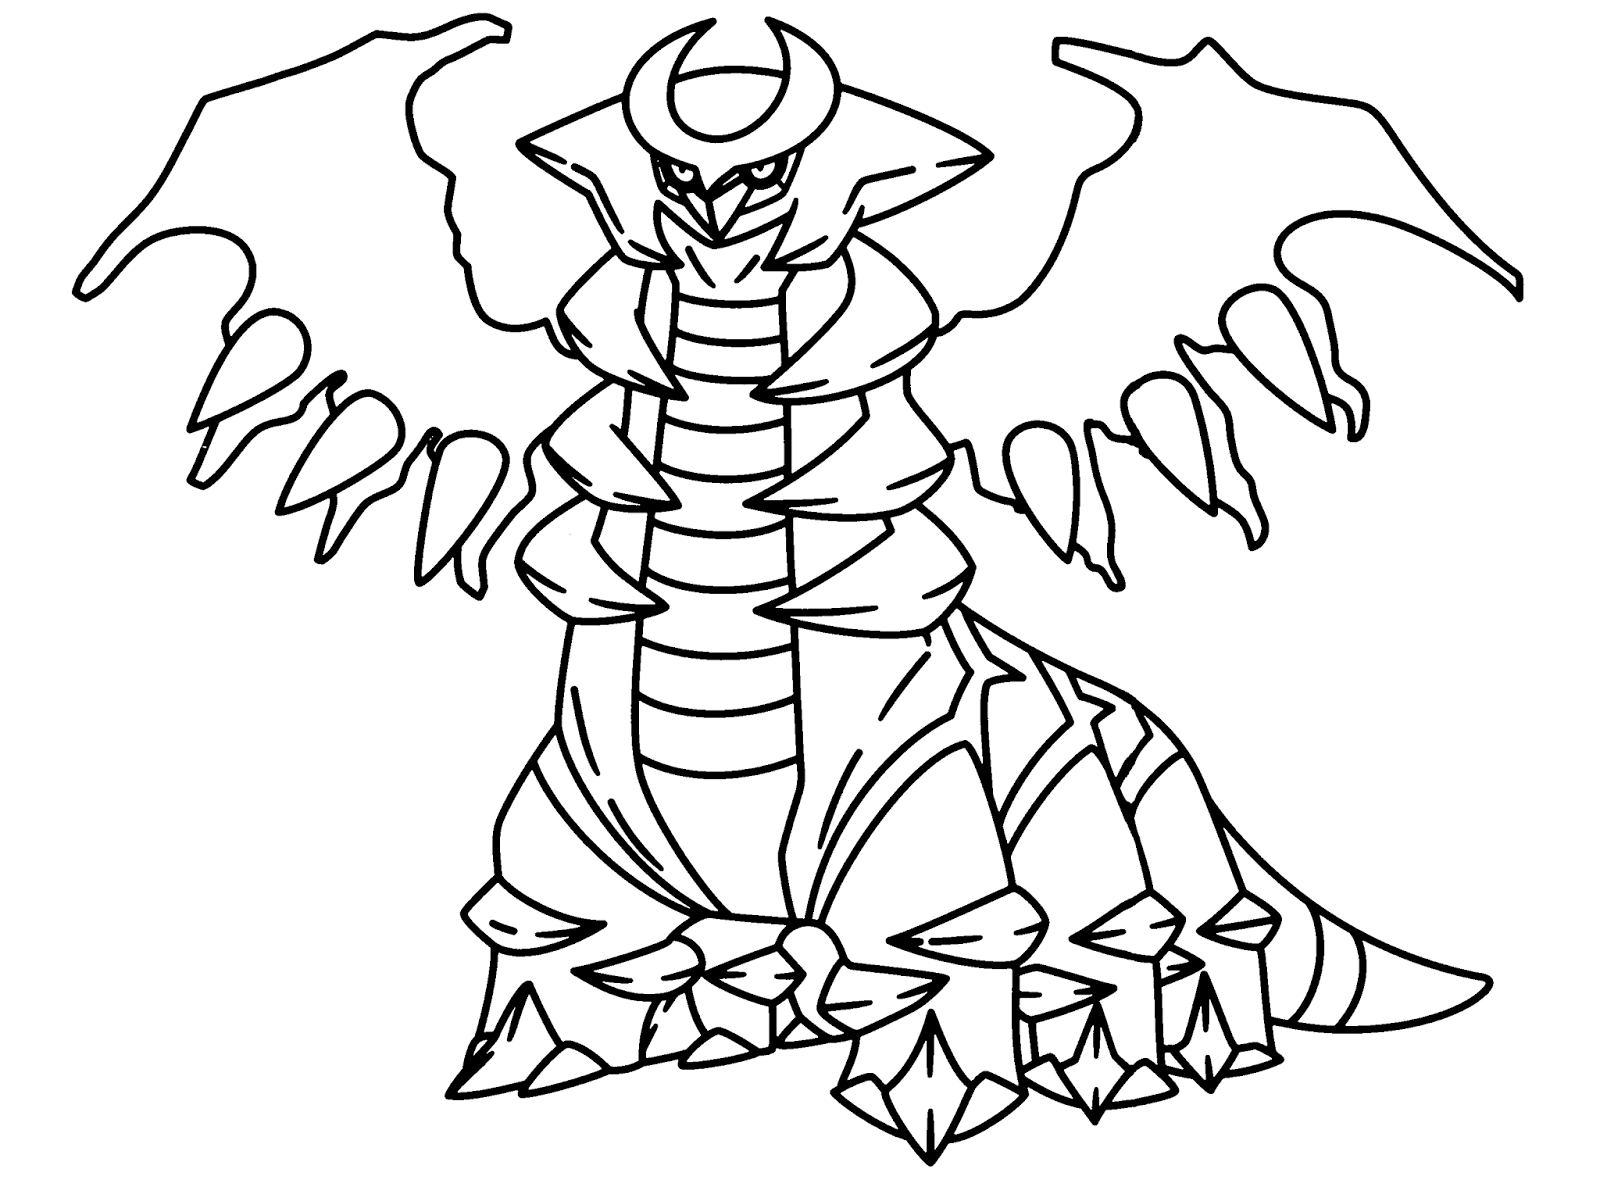 1600x1187 Fresh Pokemon Coloring Pages Free Online Collection Printable